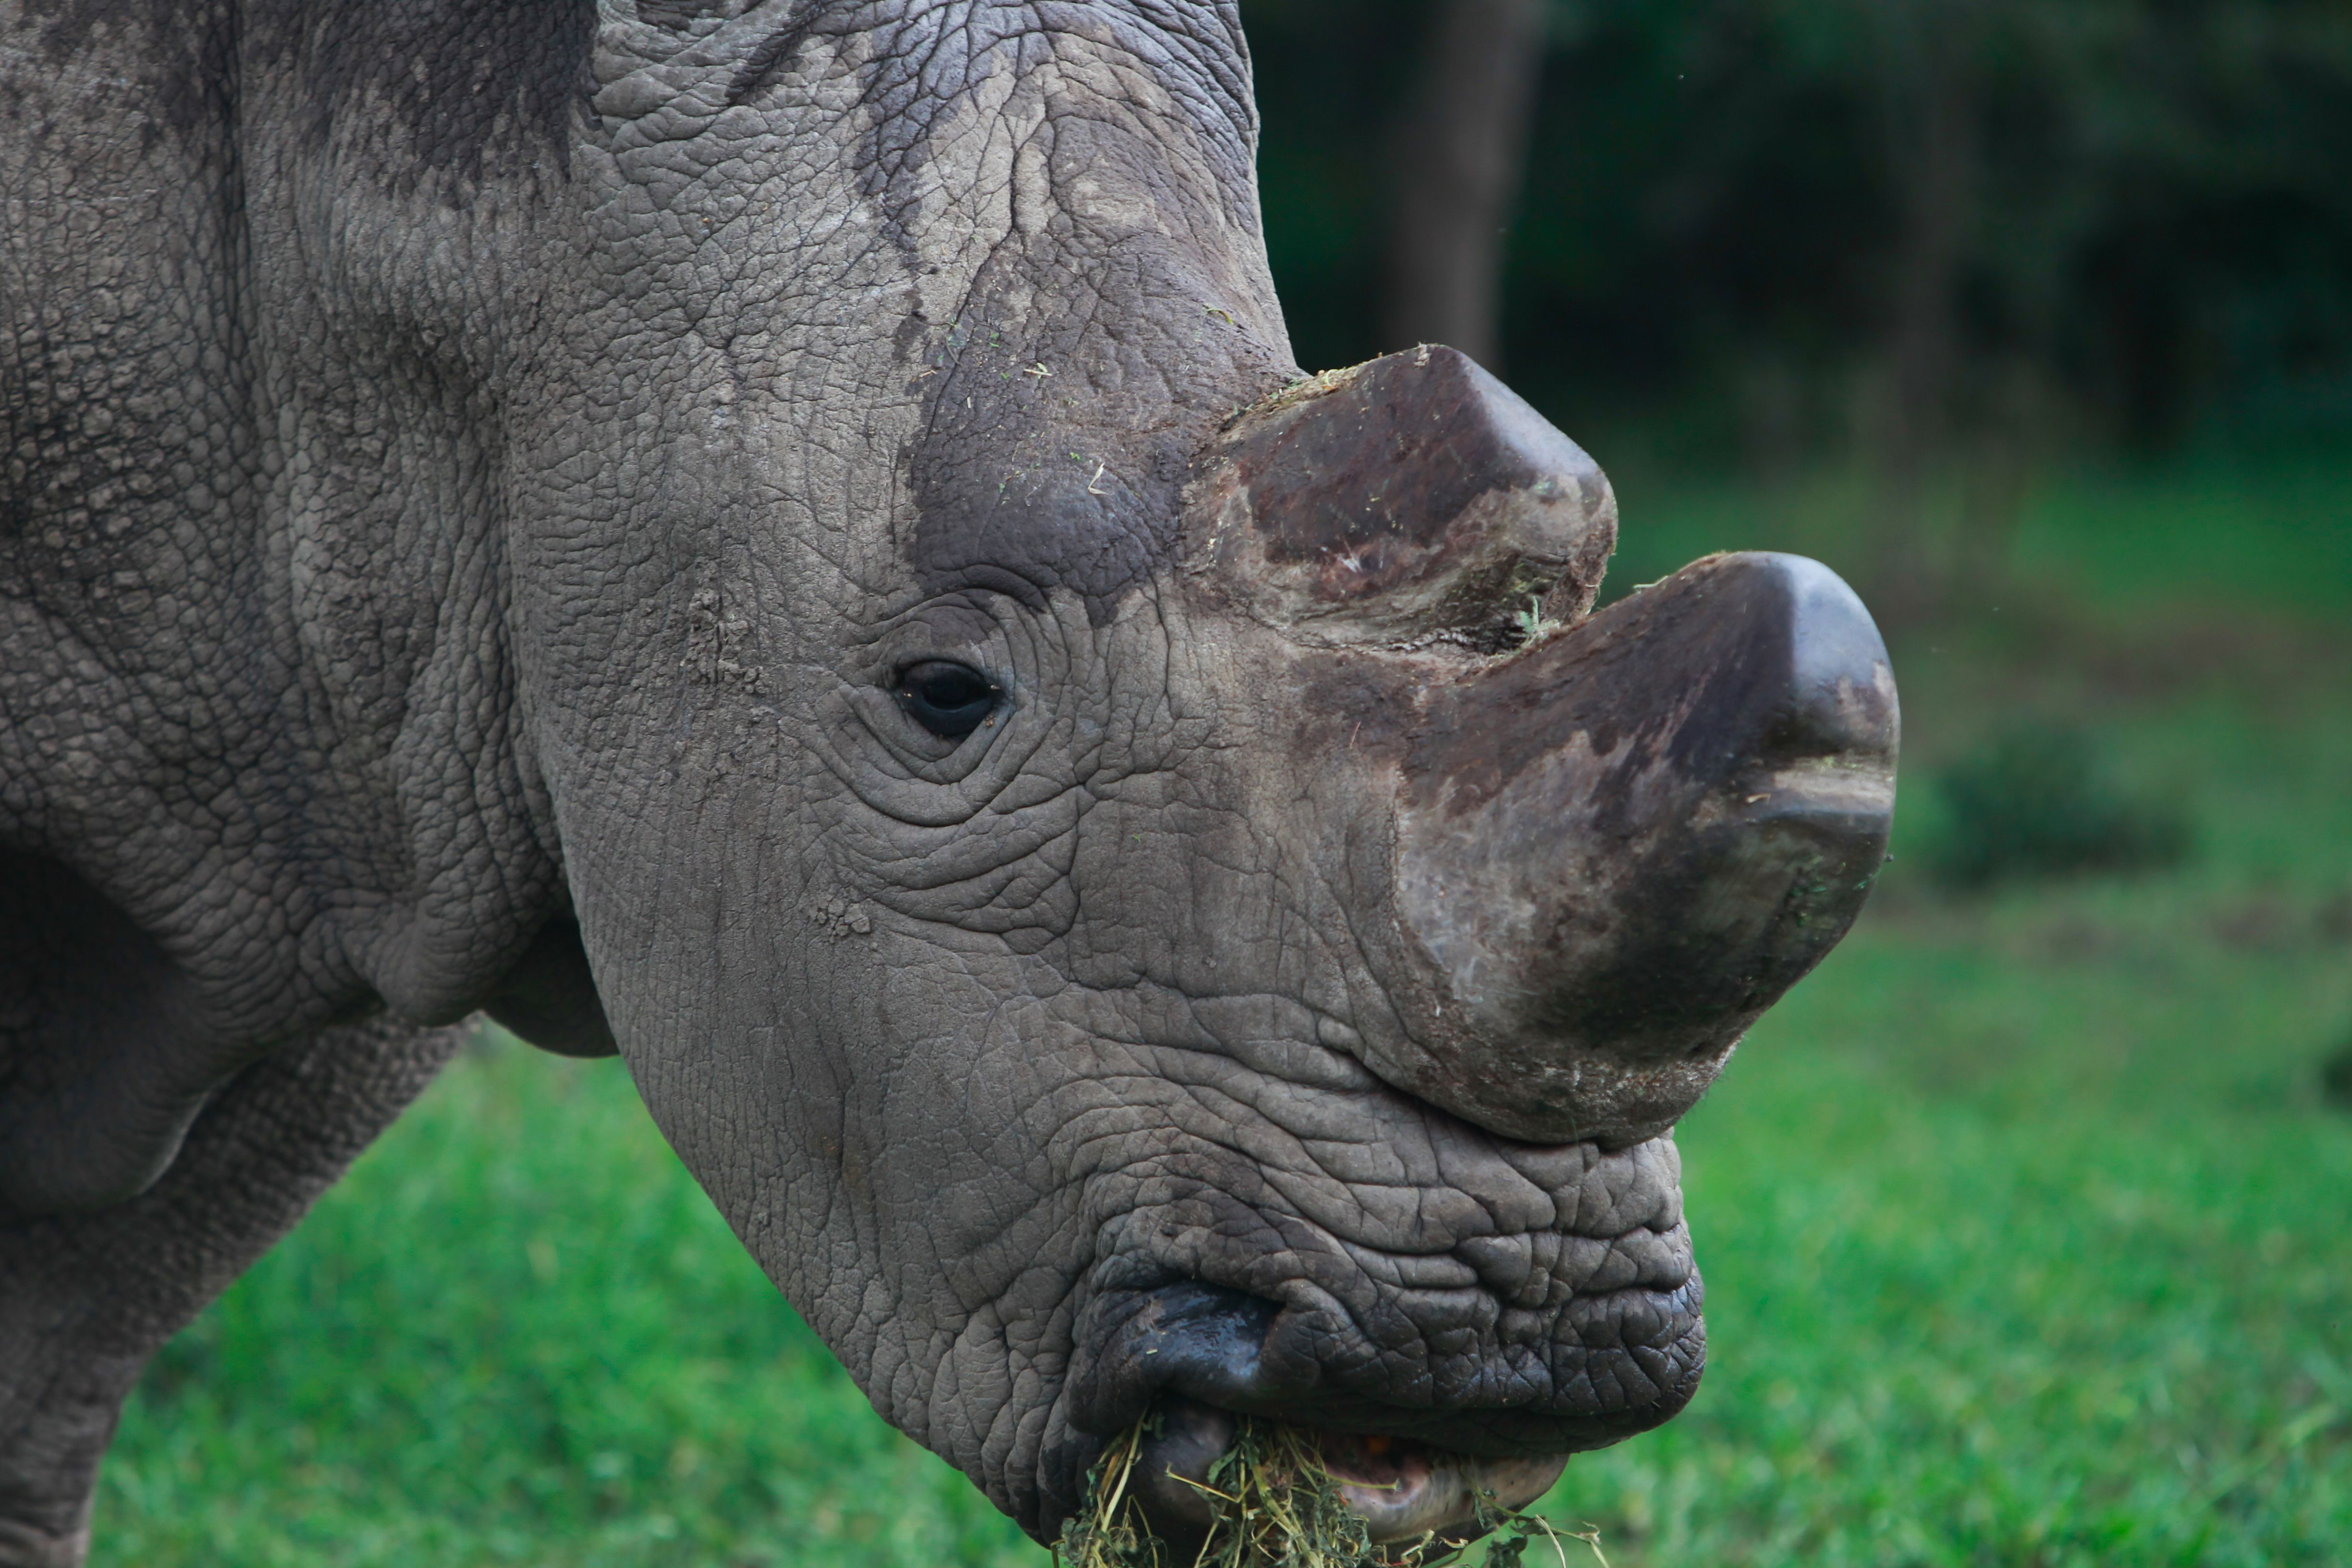 epa04764805 A picture made available 24 May 2015 shows Sudan, the last male northern white rhino in the world, feeding at the Ol Pejeta Conservancy in Nanyuki, Kenya, 23 May 2015. Sudan is under 24-hour protection along with females Najin and Fatu. They are surrounded by electric fencing and watched over by rangers with loaded rifles. Their horns have been cut off to deter poachers. If Sudan does not reproduce soon, with the help of a pioneering South African veterinarian, the species will become extinct. Rhino horn - which is primarily made of keratin, a protein also found in hair and fingernails - is in high demand in Asia, where it is believed to boost sexual potency.  EPA/DANIEL IRUNGU